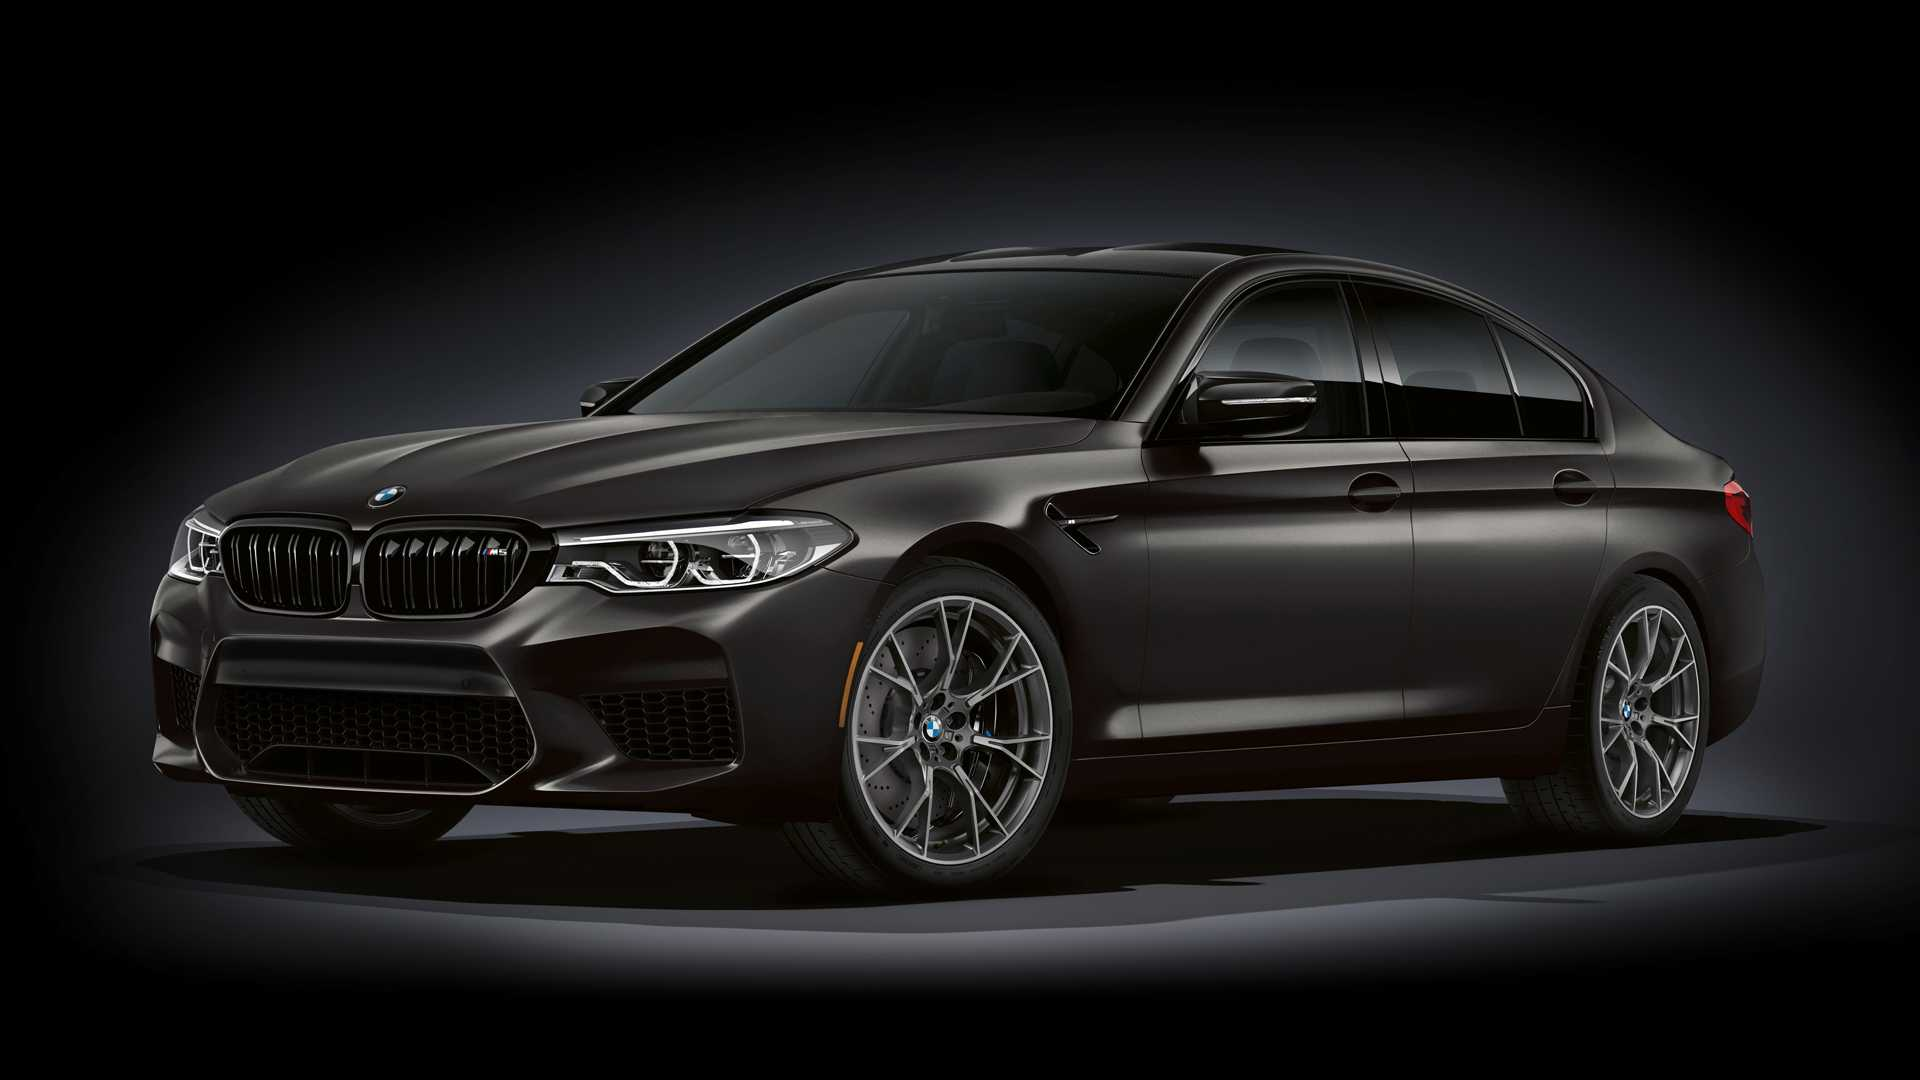 79 Concept of Bmw M5 2020 Spy Shoot by Bmw M5 2020